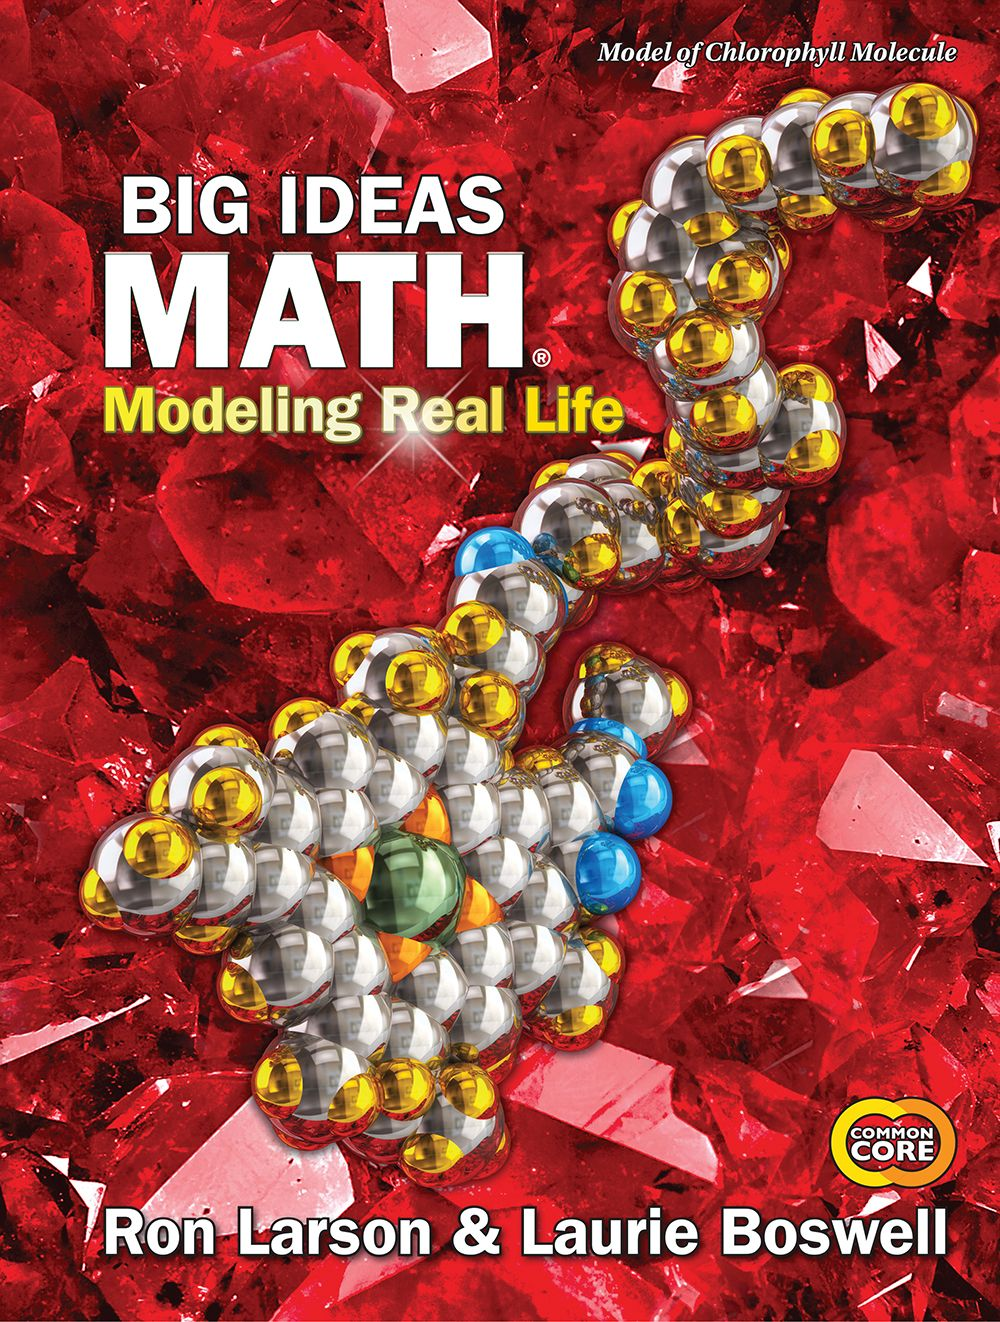 grade 7 math: the big ideas math: modeling real life program uses a